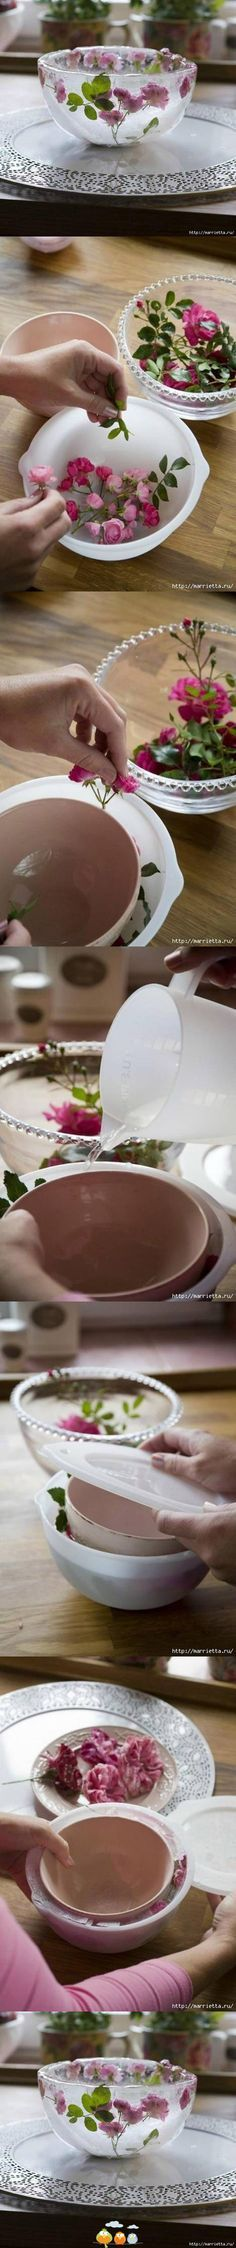 How to make a floral ice bowl for ritual work - Pinned by The Mystic's Emporium…